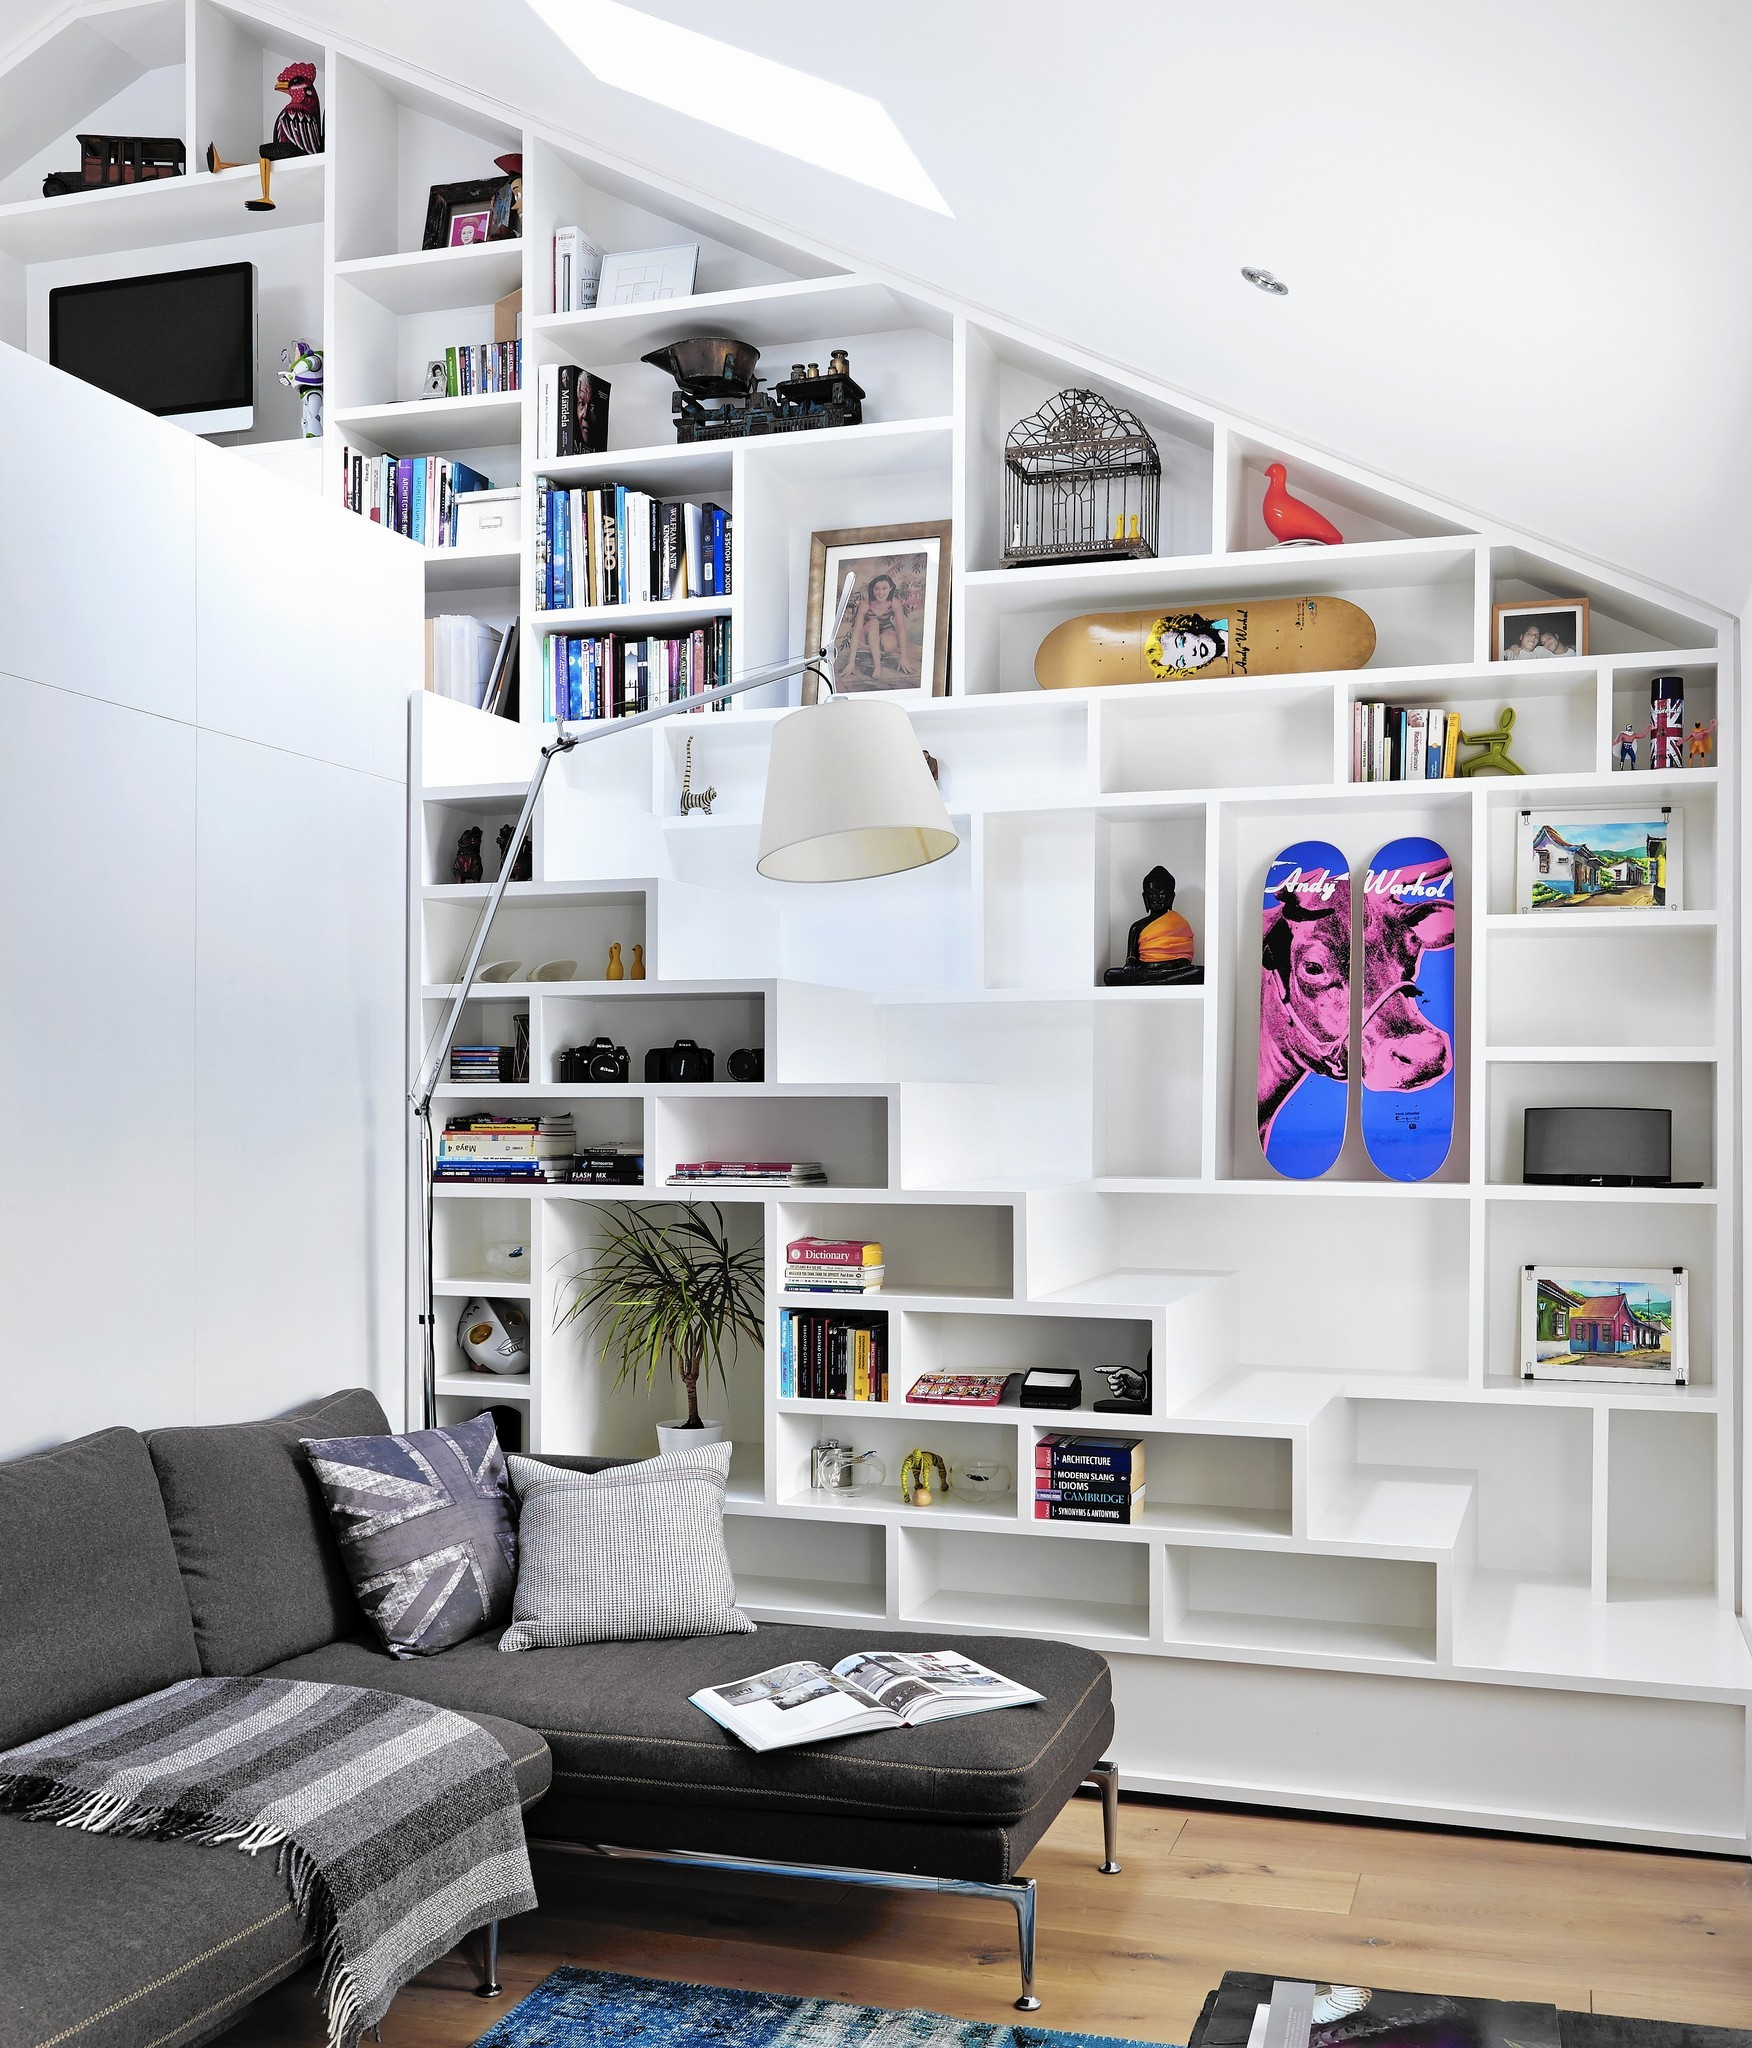 6 style lessons for tiny spaces - Chicago Tribune